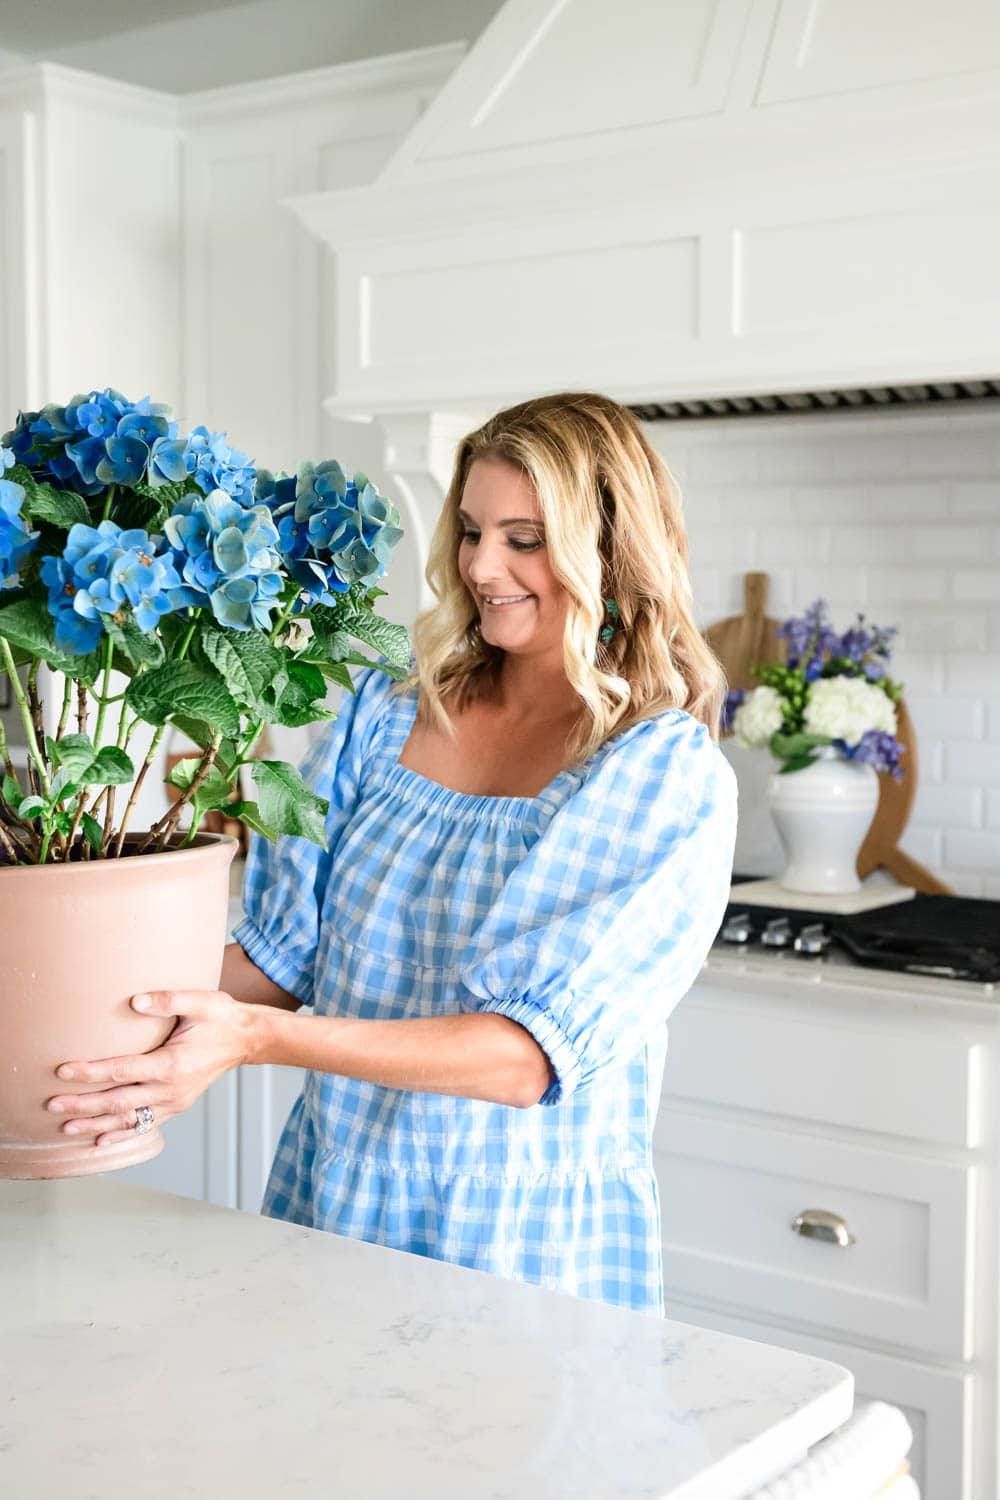 Simple Summer Styling Tips For The Kitchen